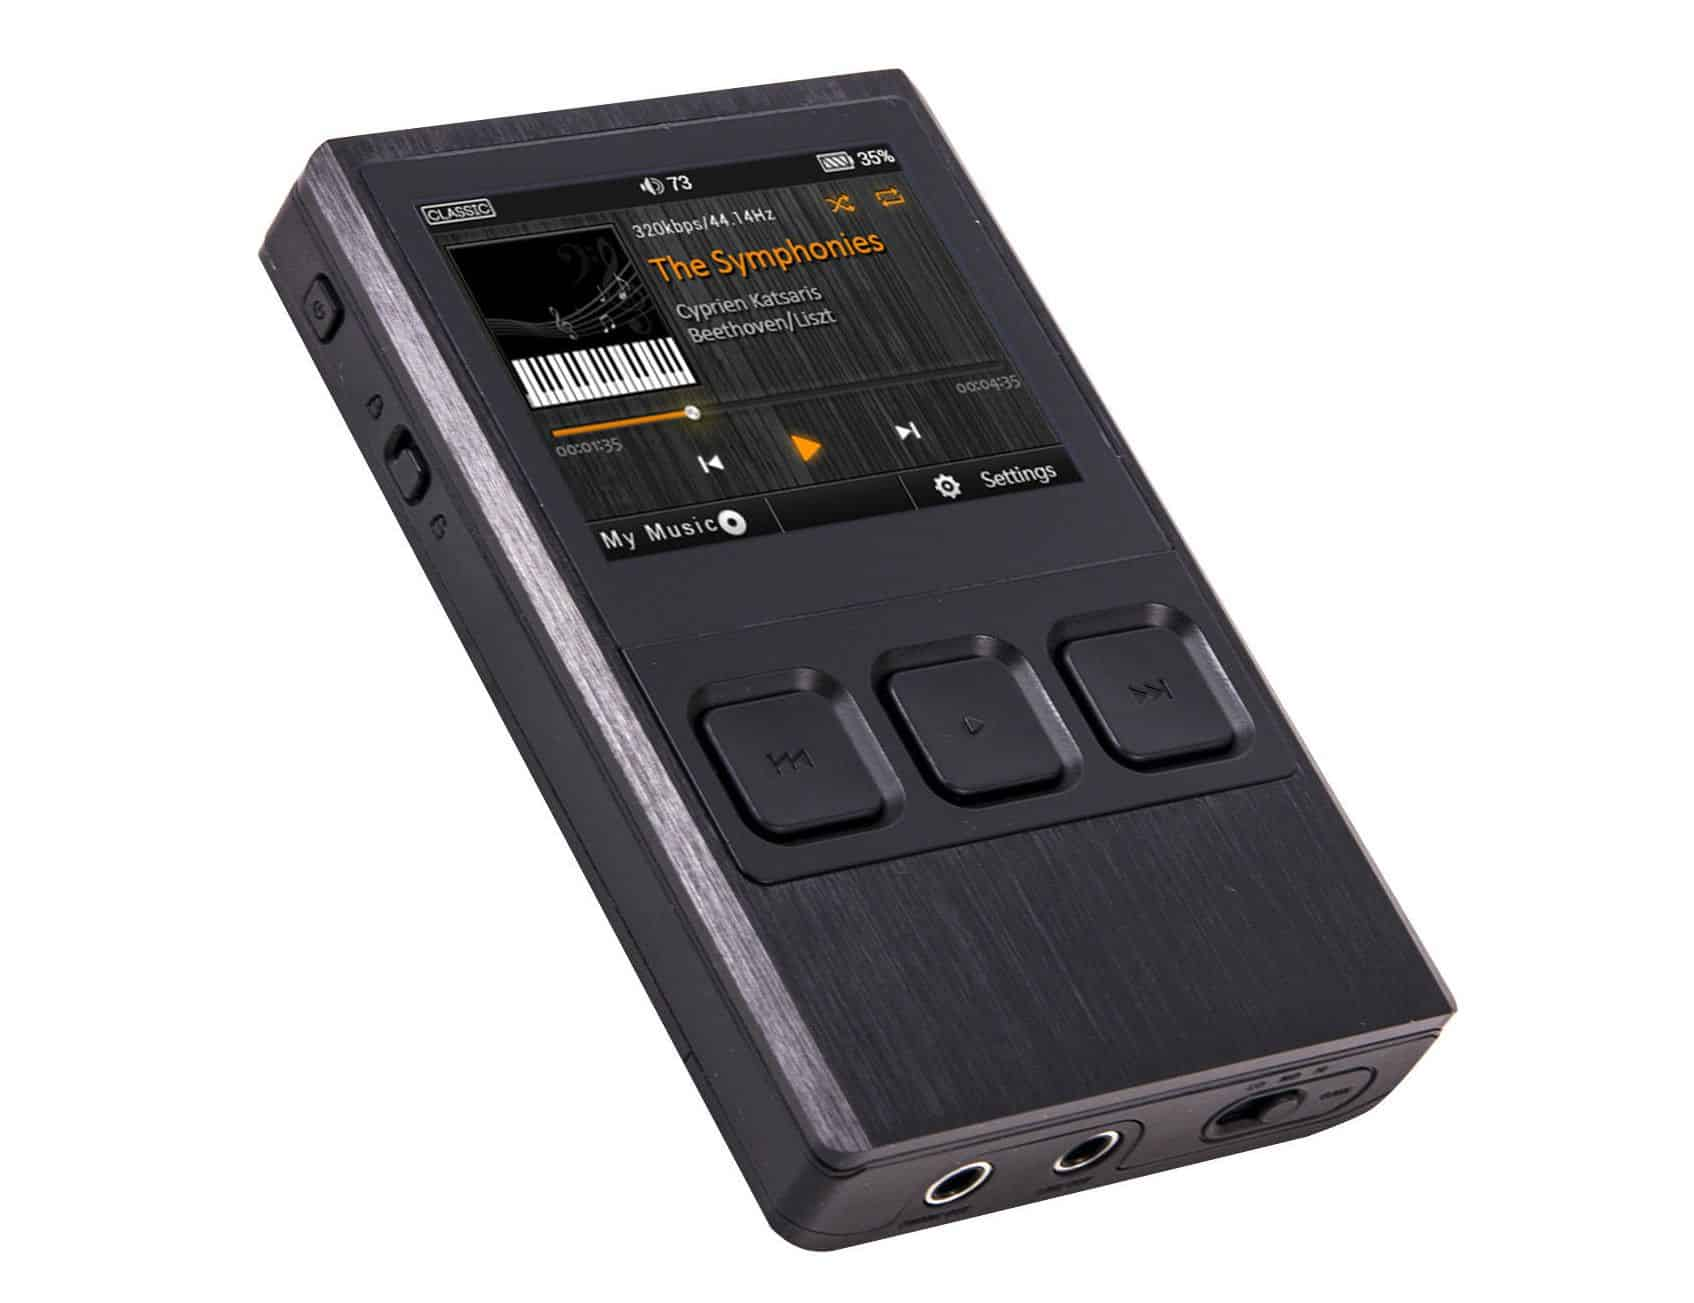 amazon Ibasso DX50 reviews Ibasso DX50 on amazon newest Ibasso DX50 prices of Ibasso DX50 Ibasso DX50 deals best deals on Ibasso DX50 buying a Ibasso DX50 lastest Ibasso DX50 what is a Ibasso DX50 Ibasso DX50 at amazon where to buy Ibasso DX50 where can i you get a Ibasso DX50 online purchase Ibasso DX50 Ibasso DX50 sale off Ibasso DX50 discount cheapest Ibasso DX50 Ibasso DX50 for sale Ibasso DX50 products Ibasso DX50 tutorial Ibasso DX50 specification Ibasso DX50 features Ibasso DX50 test Ibasso DX50 series Ibasso DX50 service manual Ibasso DX50 instructions Ibasso DX50 accessories mise a jour ibasso dx50 ibasso dx50 vs cowon plenue d ibasso dx50 vs plenue d ibasso dx50 mode d'emploi ibasso dx50 o fiio x3 ibasso dx50 mod 2 ibasso dx50 achat ibasso dx50 aliexpress ibasso dx50 accessories ibasso dx50 as external dac ibasso dx50 amp ibasso dx50 android dac ibasso dx50 android ibasso dx50 amazon ibasso dx50 as usb dac ibasso dx50 amazon uk ibasso dx50 battery ibasso dx50 bluetooth ibasso dx50 battery life ibasso dx50 buy ibasso dx50 bán ibasso dx50 background ibasso dx50 best firmware bán ibasso dx50 cũ bán máy nghe nhạc ibasso dx50 bao da ibasso dx50 ibasso dx50 case ibasso dx50 custom firmware ibasso dx50 cena ibasso dx50 cũ ibasso dx50 chile ibasso dx50 canada ibasso dx50 coaxial cable ibasso dx50 coaxial out ibasso dx50 cz ibasso dx50 connections ibasso dx50 digital out ibasso dx50 drivers ibasso dx50 dap ibasso dx50 disassembly ibasso dx50 dx80 ibasso dx50 dsd support ibasso dx50 dac mac ibasso dx50 dac windows ibasso dx50 download ibasso dx50 dac ibasso dx50 eladó ibasso dx50 ebay ibasso dx50 fiio e12 ibasso dx50 equalizer hi-end ibasso dx50 etui ibasso dx50 ibasso dx50 firmware ibasso dx50 firmware 1.9.5 ibasso dx50 for sale ibasso dx50 forum fiio x3 vs ibasso dx50 ibasso dx50 freeze ibasso dx50 firmware download ibasso dx50 faq ibasso dx50 fiio x3ii ibasso dx50 giá ibasso dx50 gain switch ibasso dx50 gain đánh giá ibasso dx50 fiio x3 2nd gen vs ibasso dx50 đán